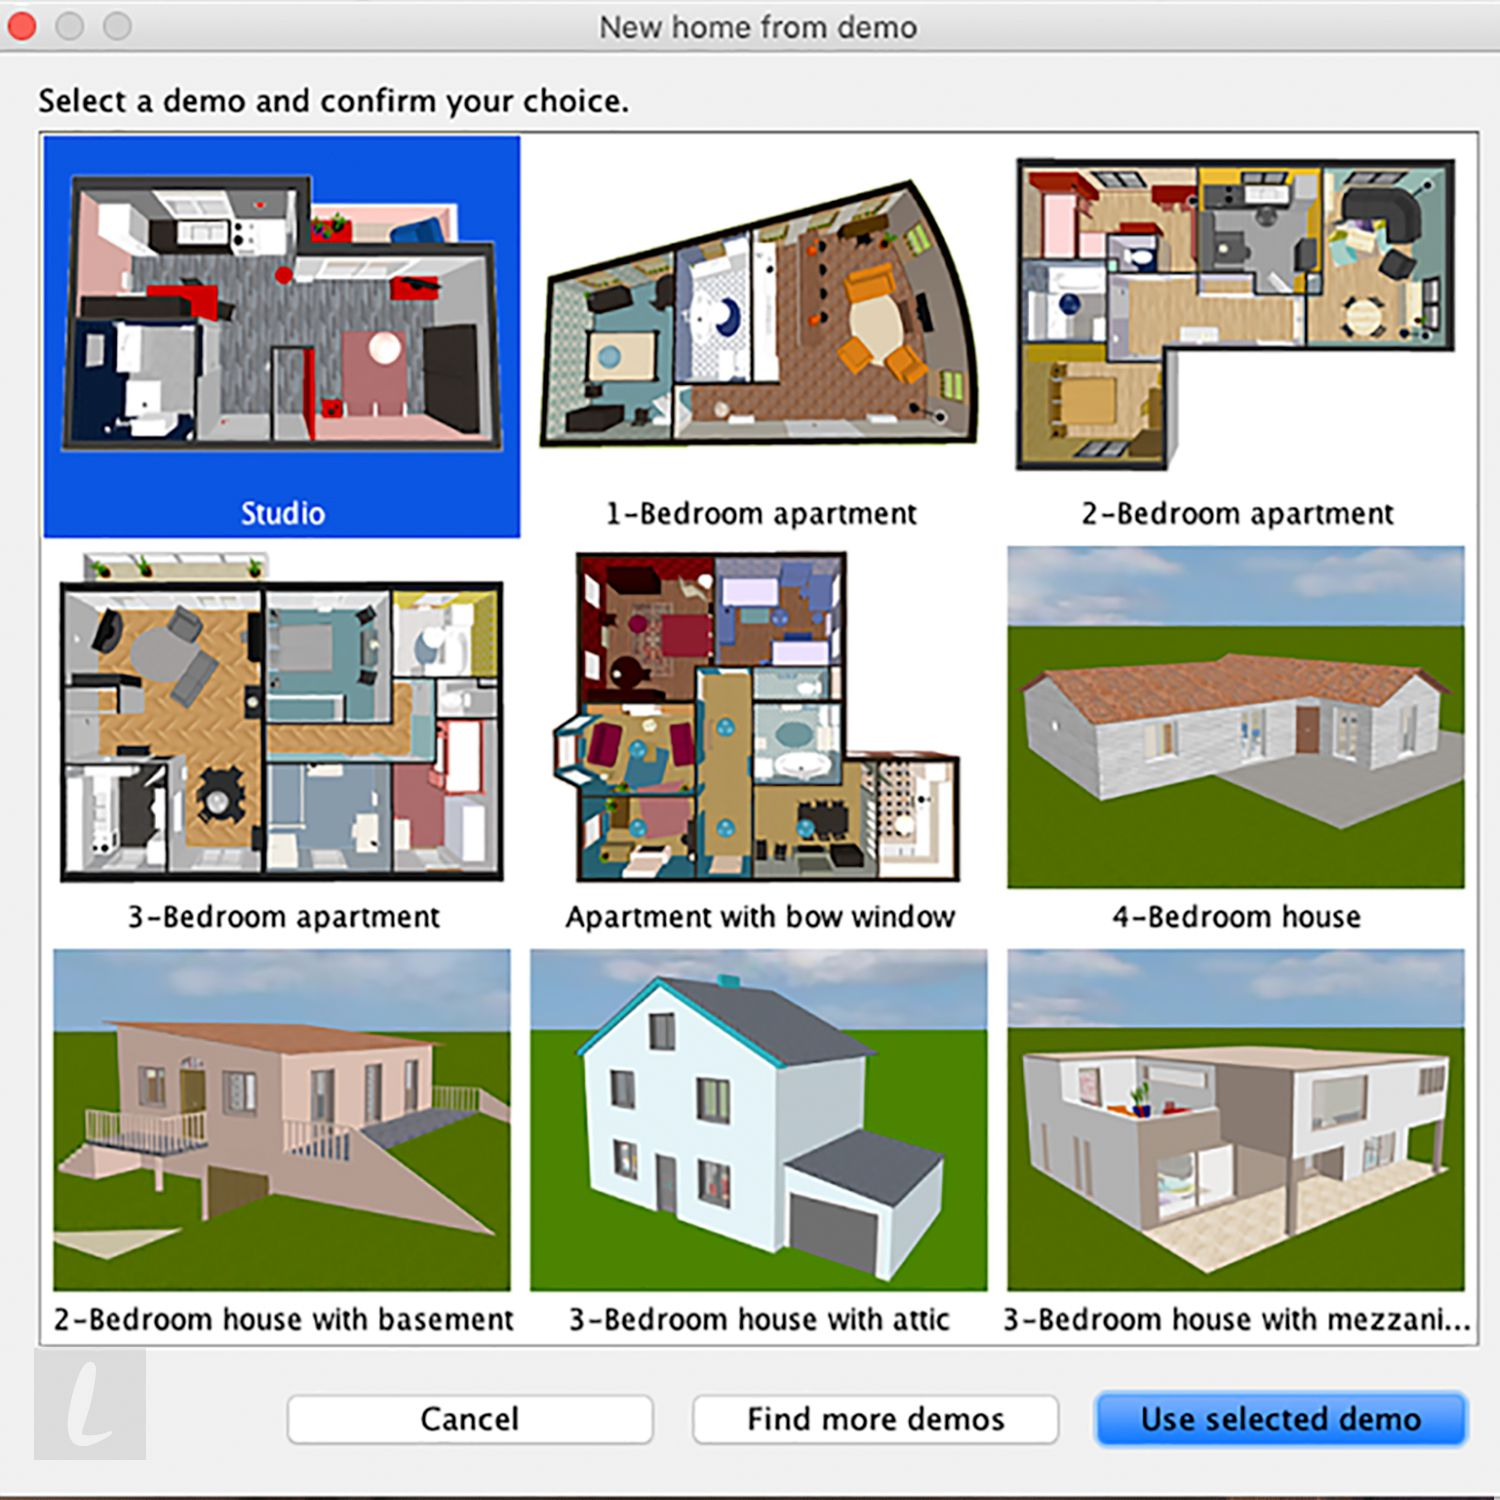 Sweet home 3d 6.4.2 released: Sweet Home 3d Review Fun And Easy With Some Limitations